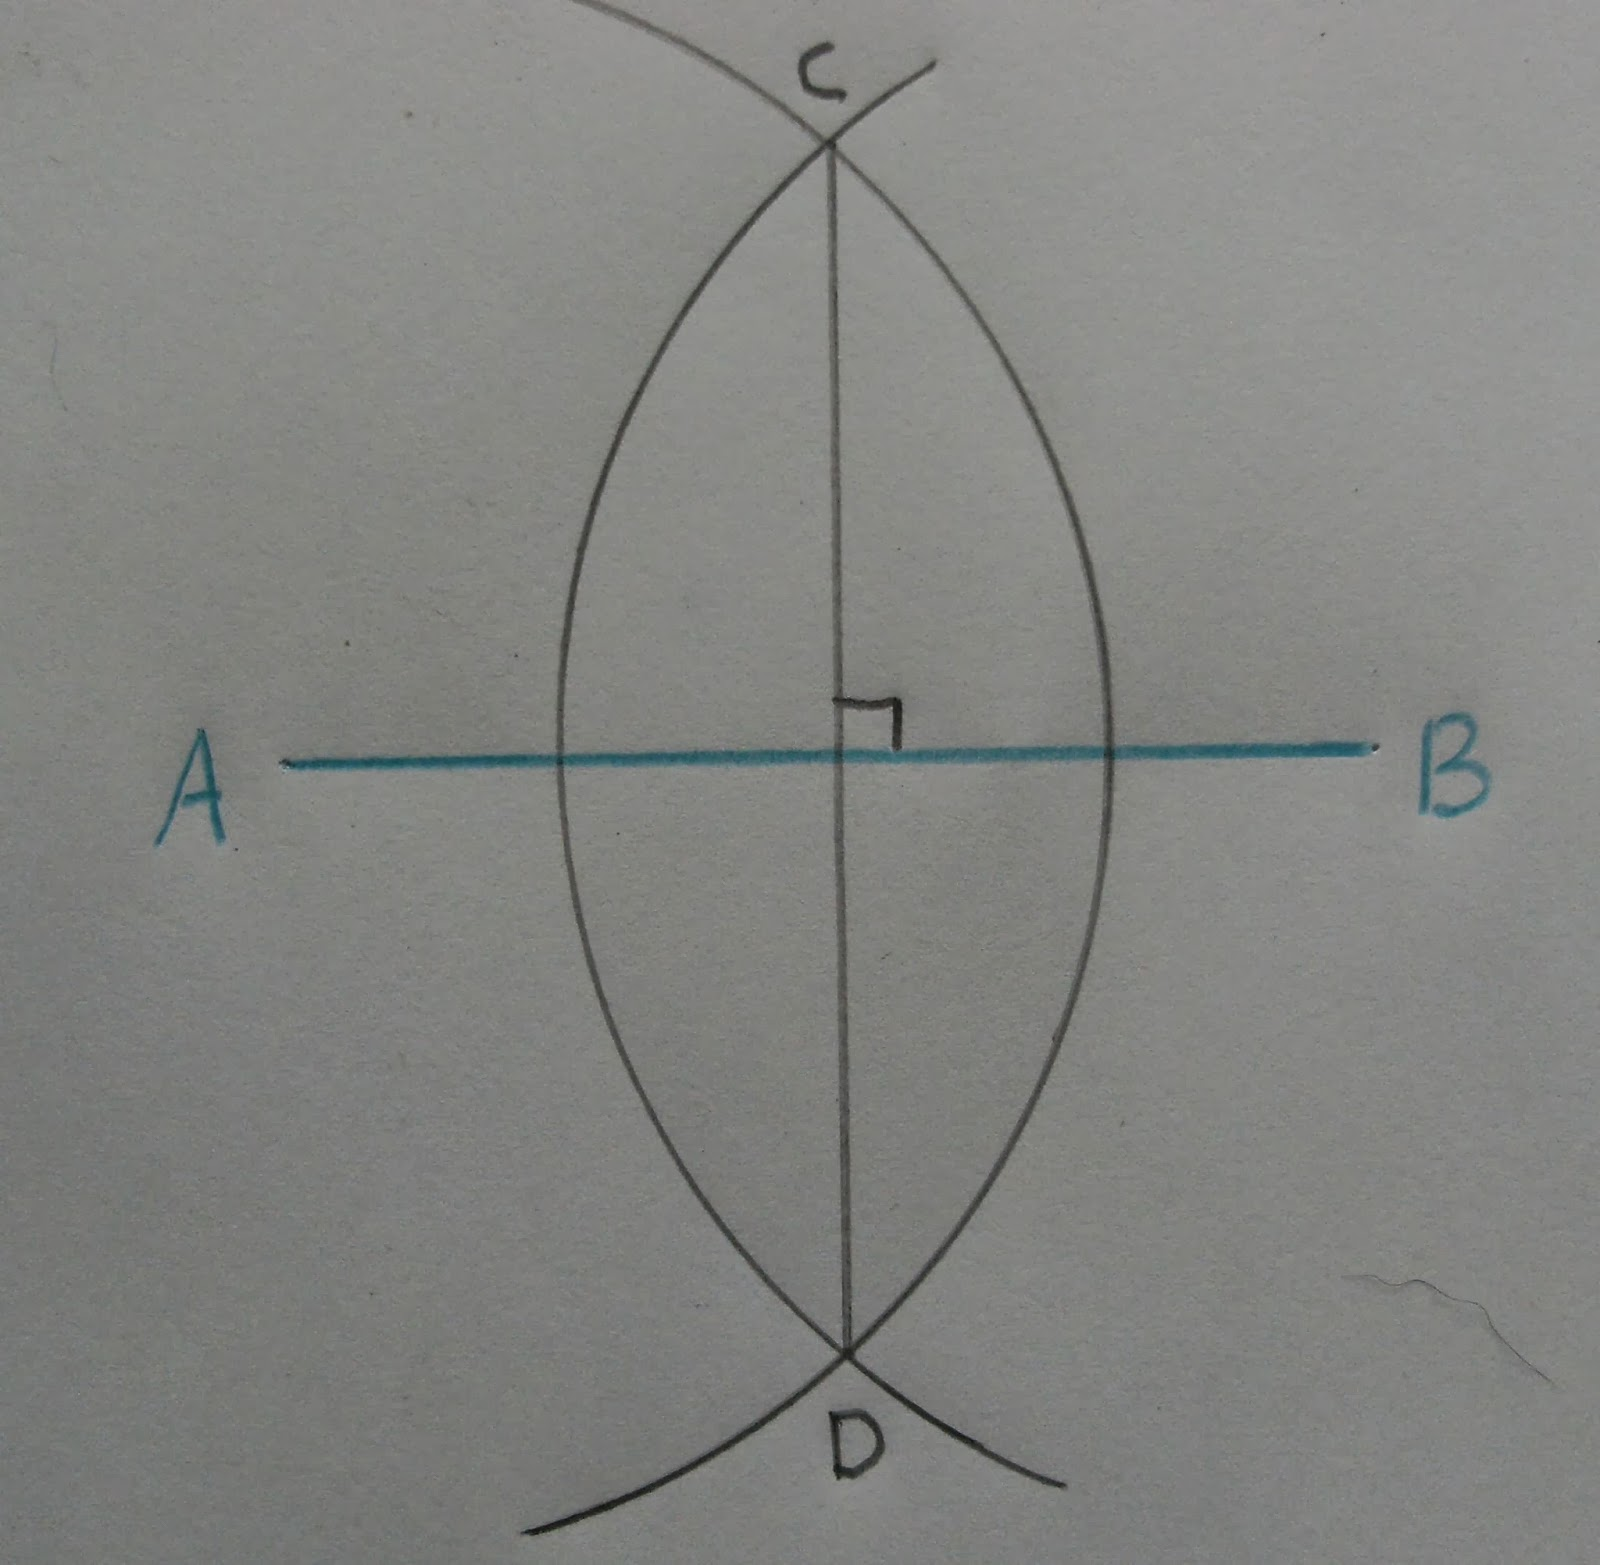 Civil D Draw Line Perpendicular : To construct the perpendicular bisector of a line segment